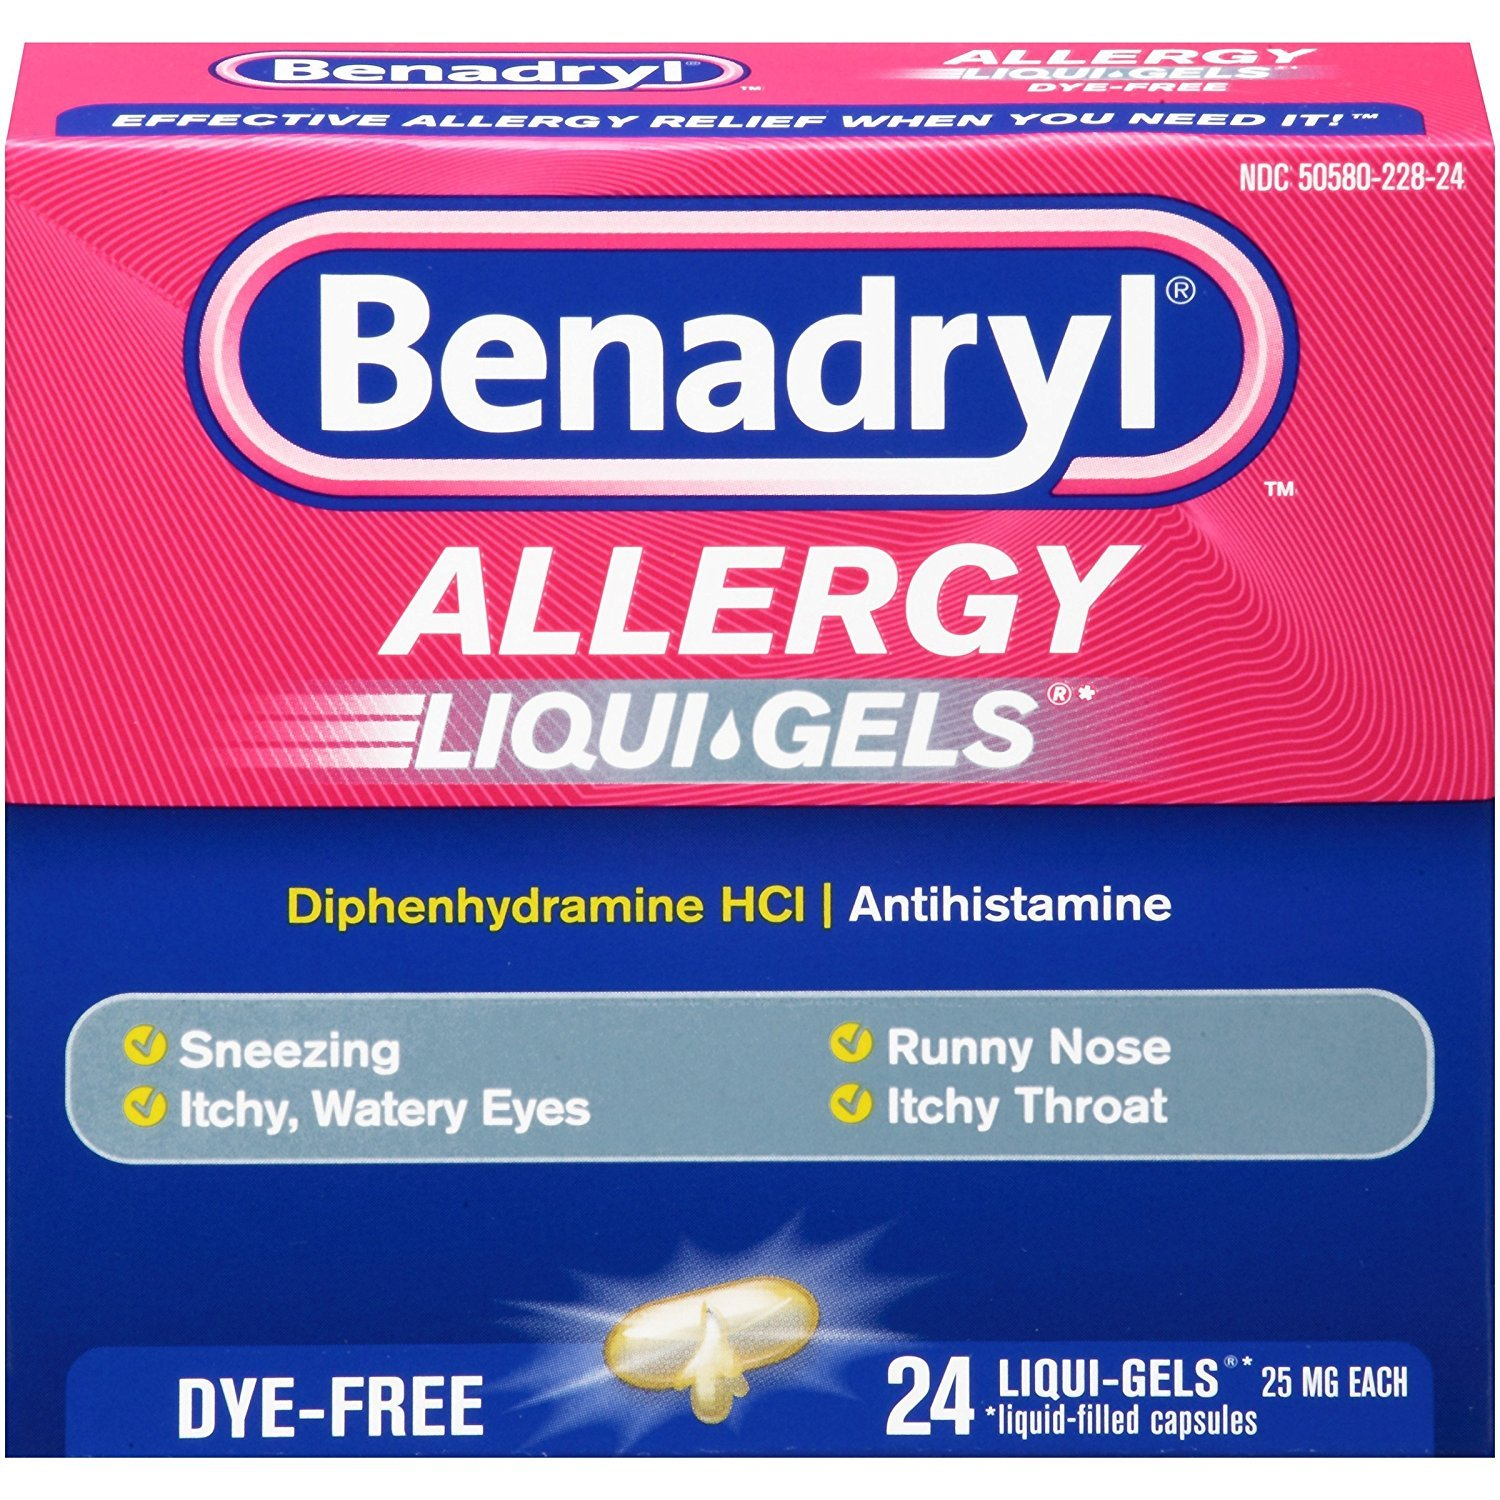 Benadryl Antihistamine Allergy Medicine & Cold Relief, Dye-Free LIQUI-GELS Tablets, Liquid Gels, 24 Count - Pack of 5